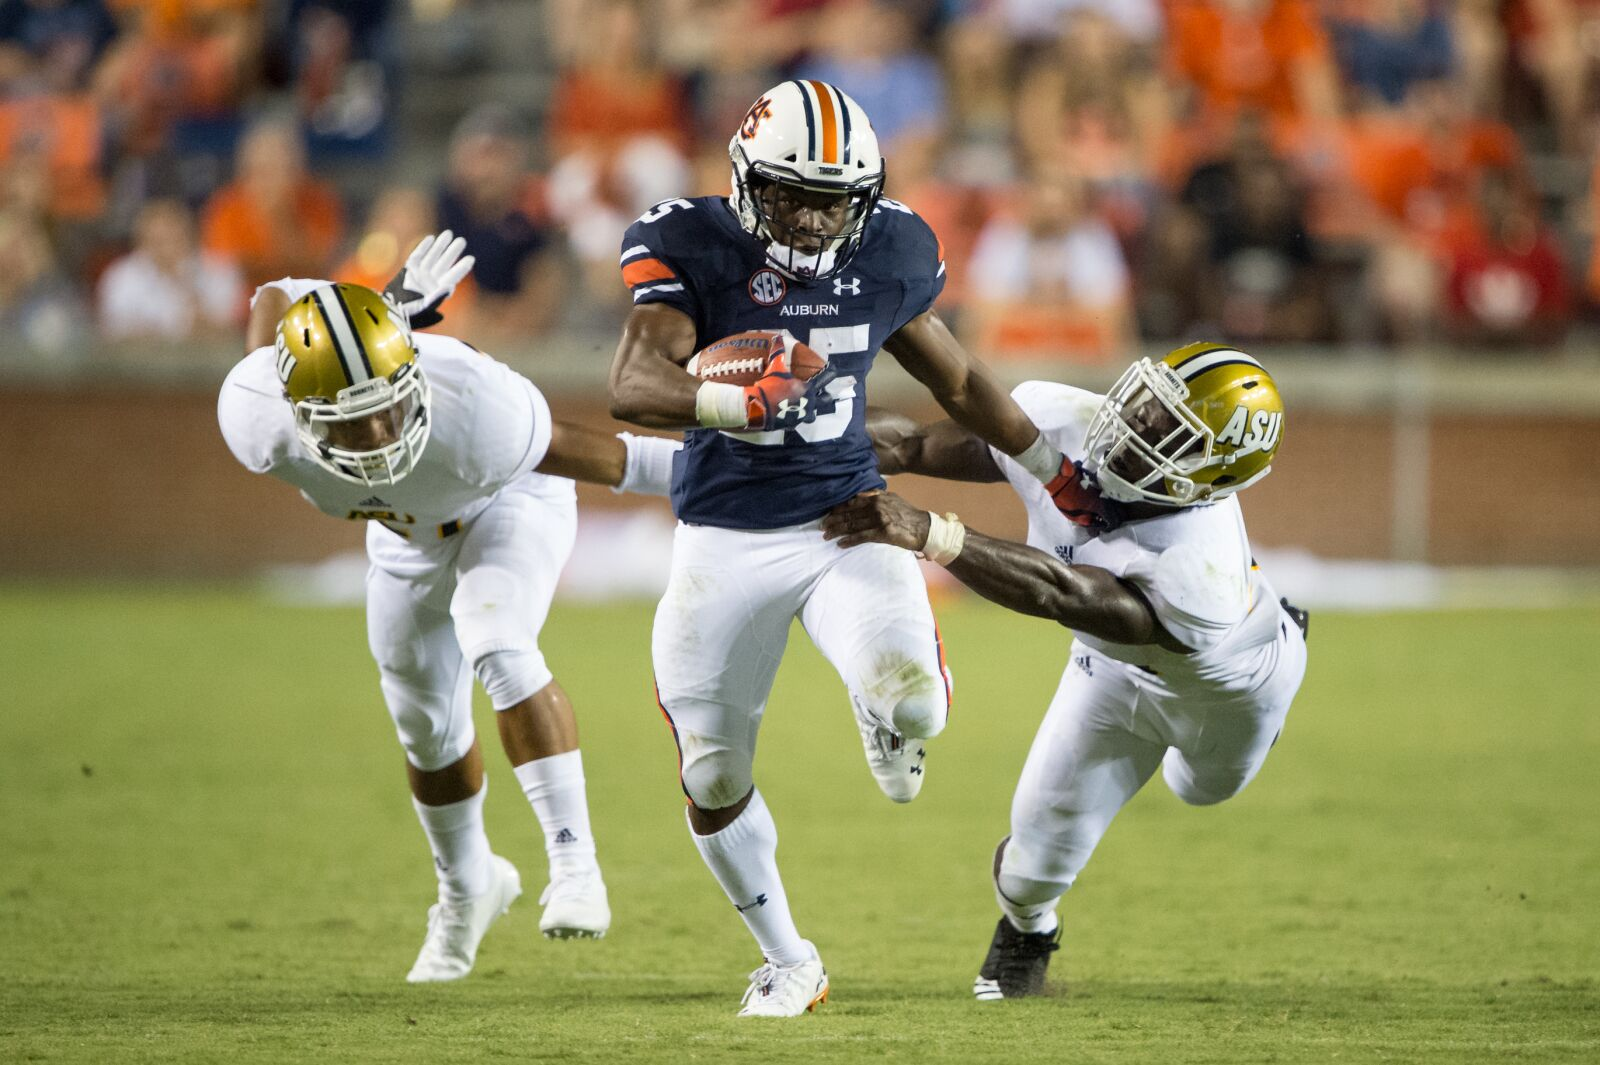 Auburn Football Tall Task But Shaun Shivers Could Join This Elite